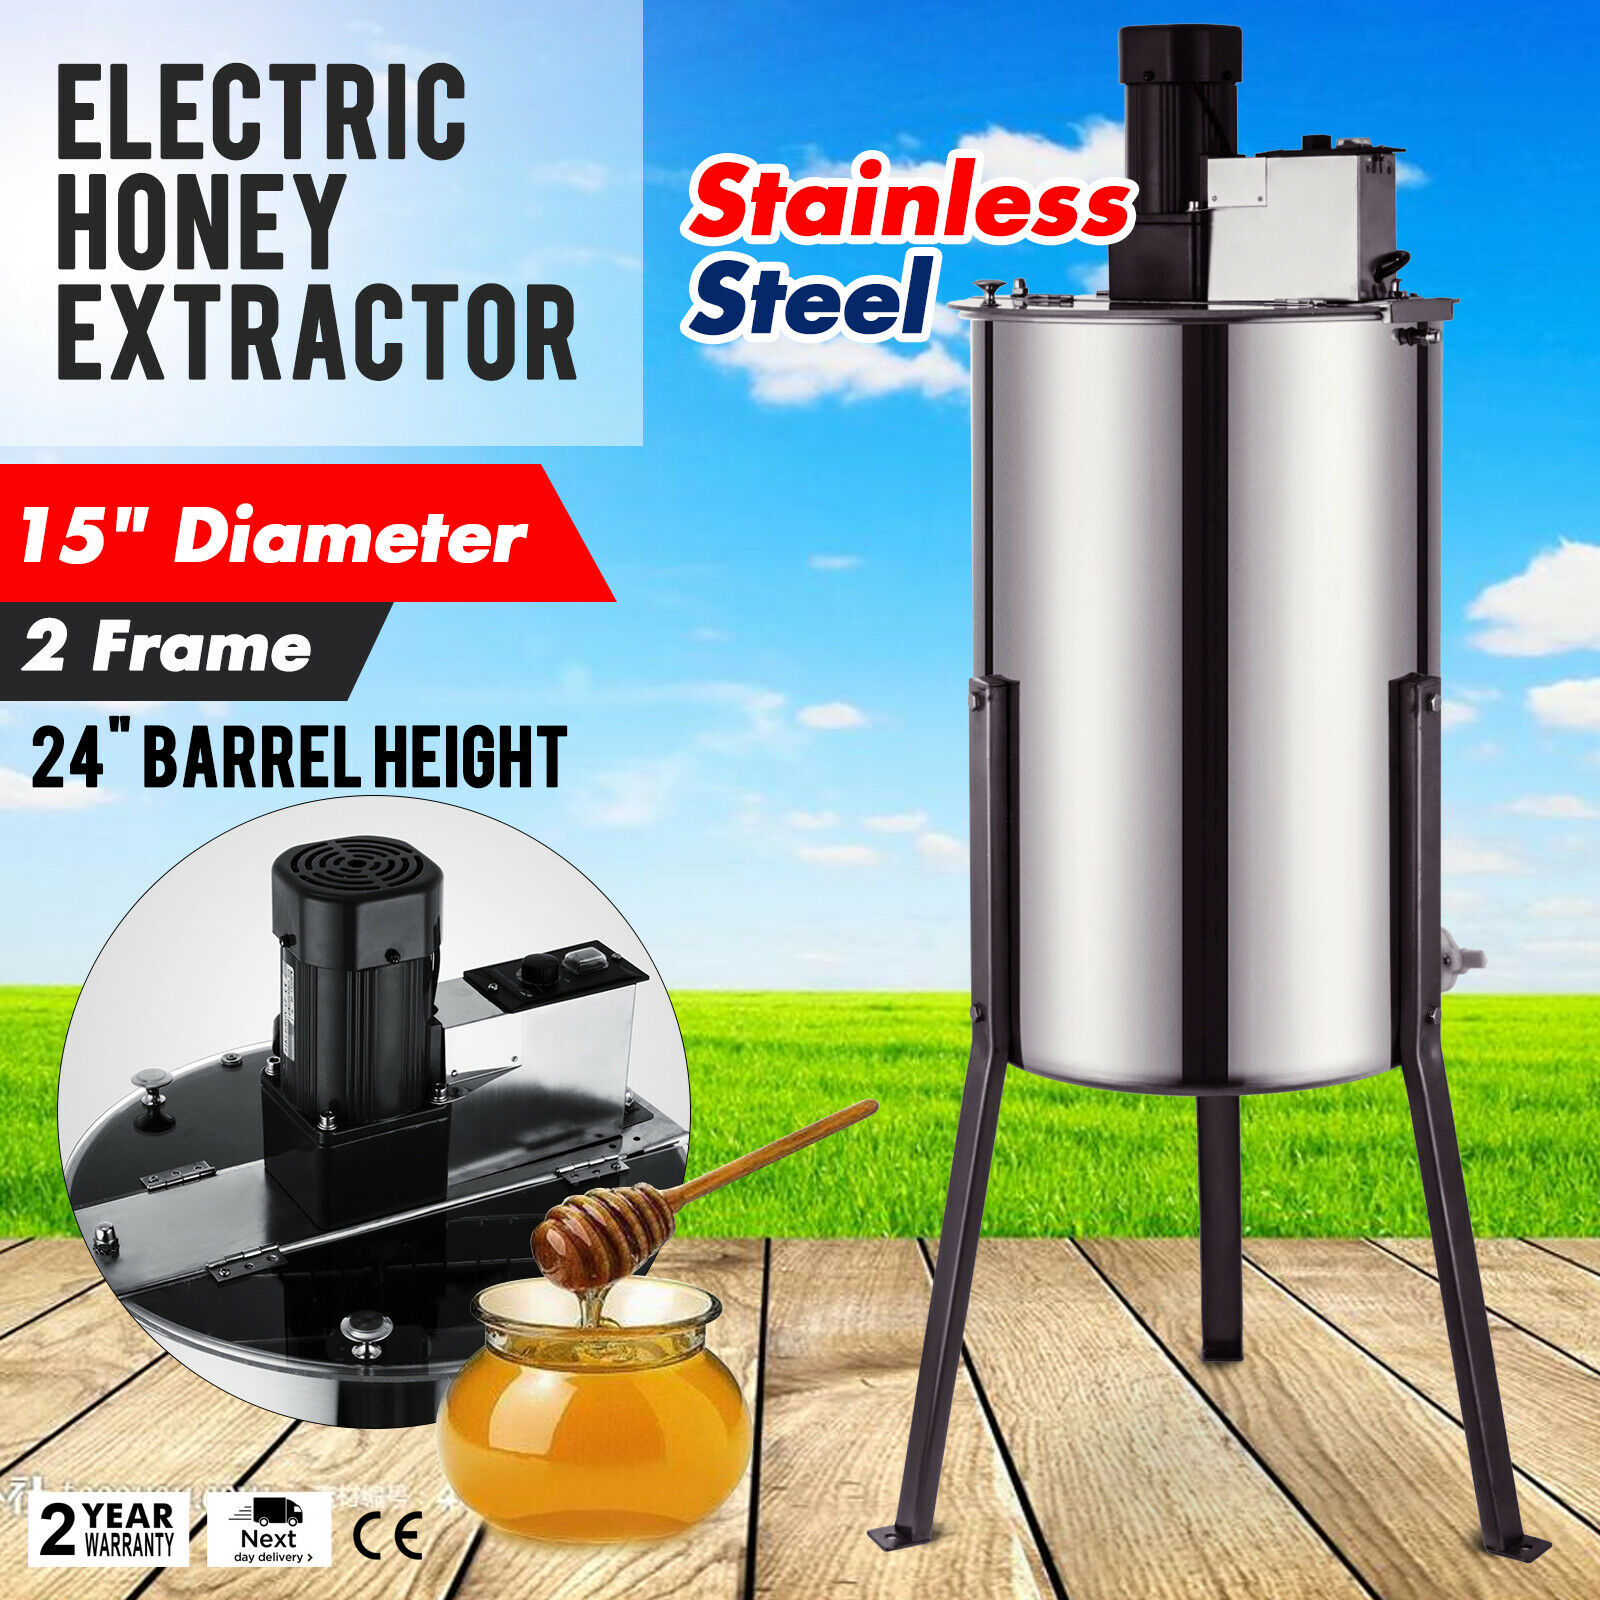 Brand New Large Two 2 Frame Stainless Steel Electric Honey Extractor